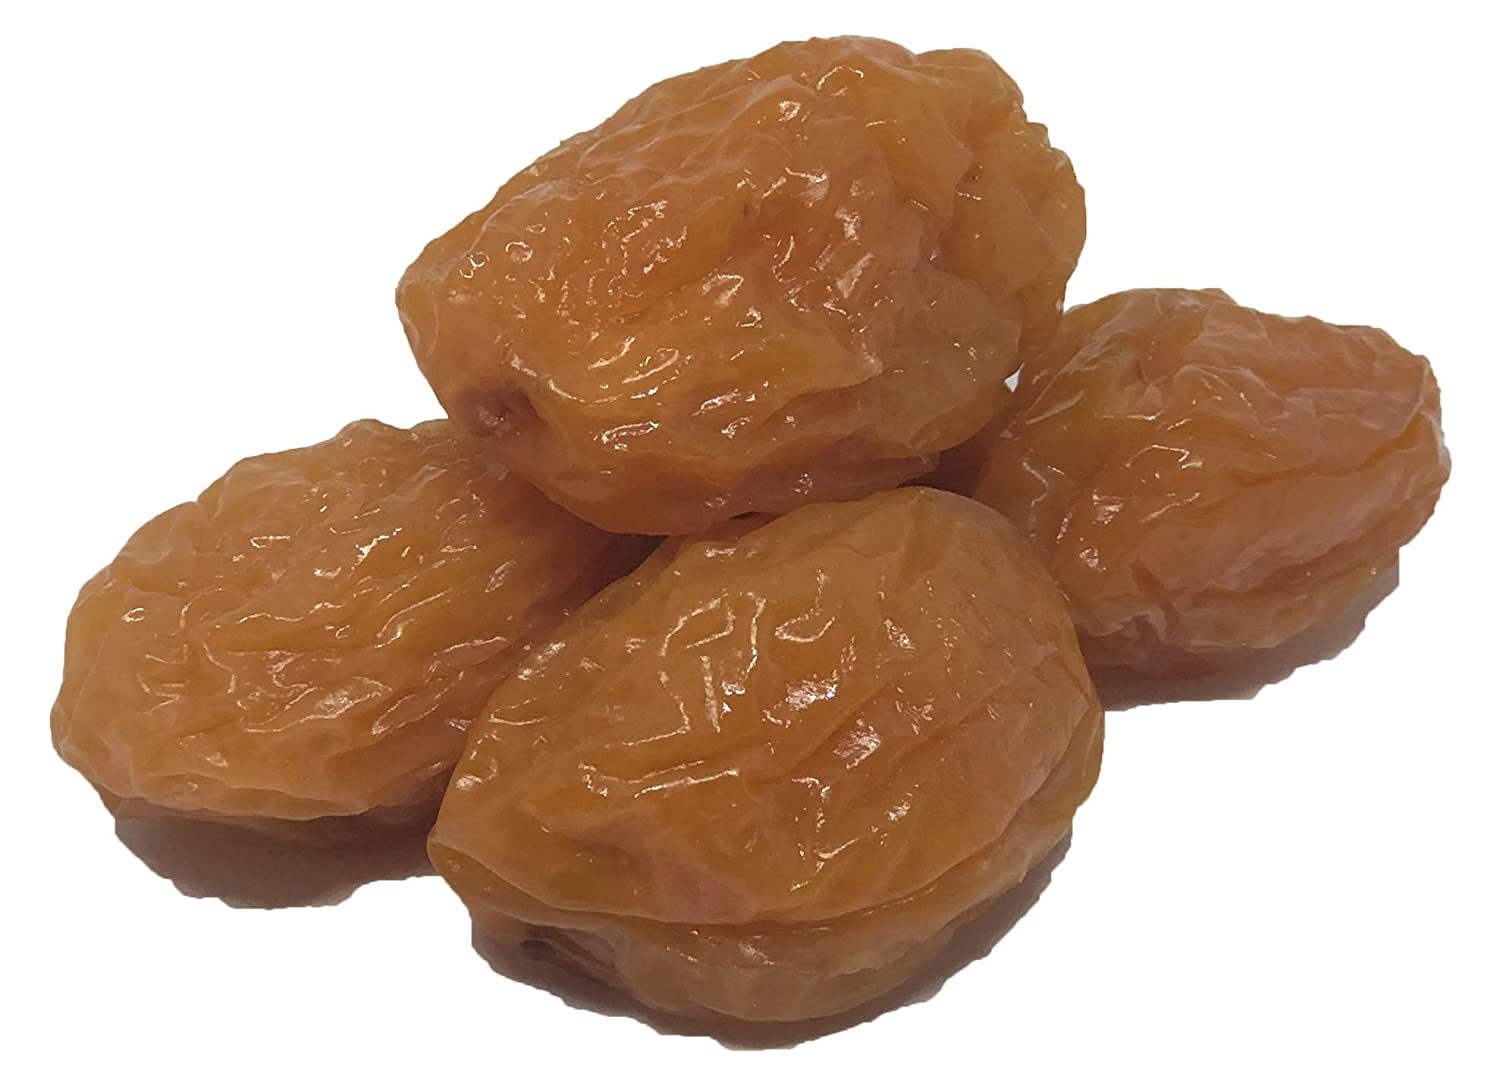 Dried Golden Sour Prunes (Plum) with Pits - 8 oz